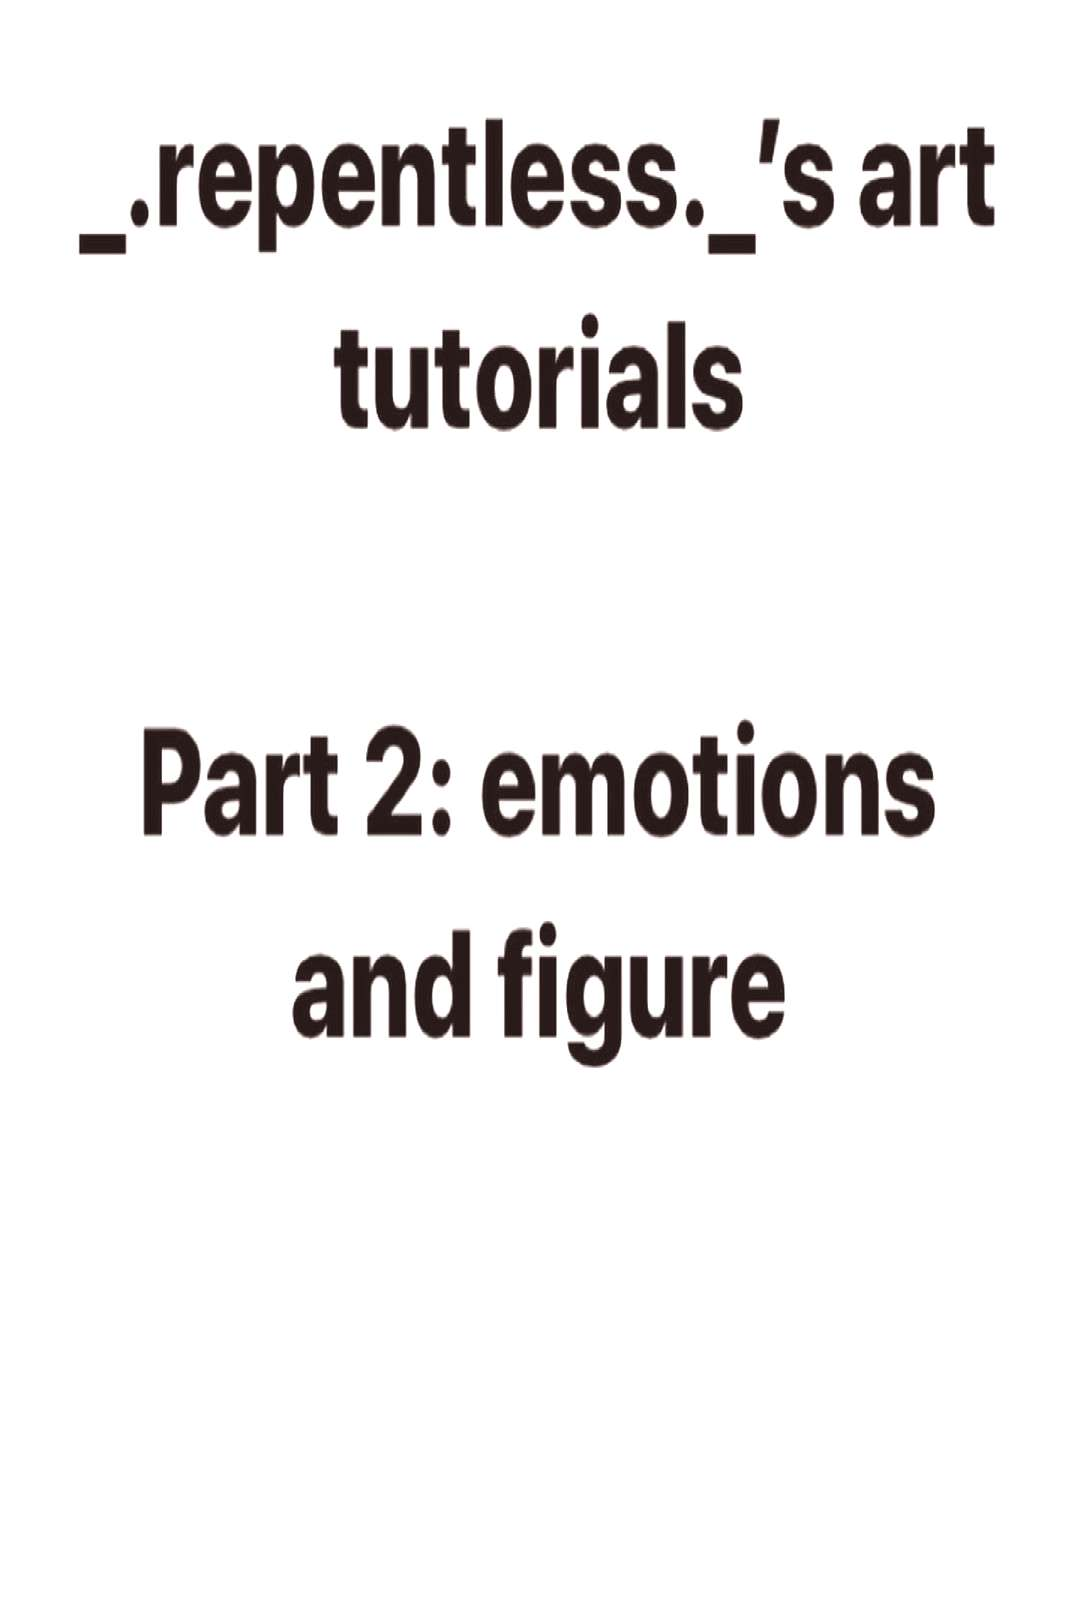 Art tutorial # 2 Personality is the best way to describe this act